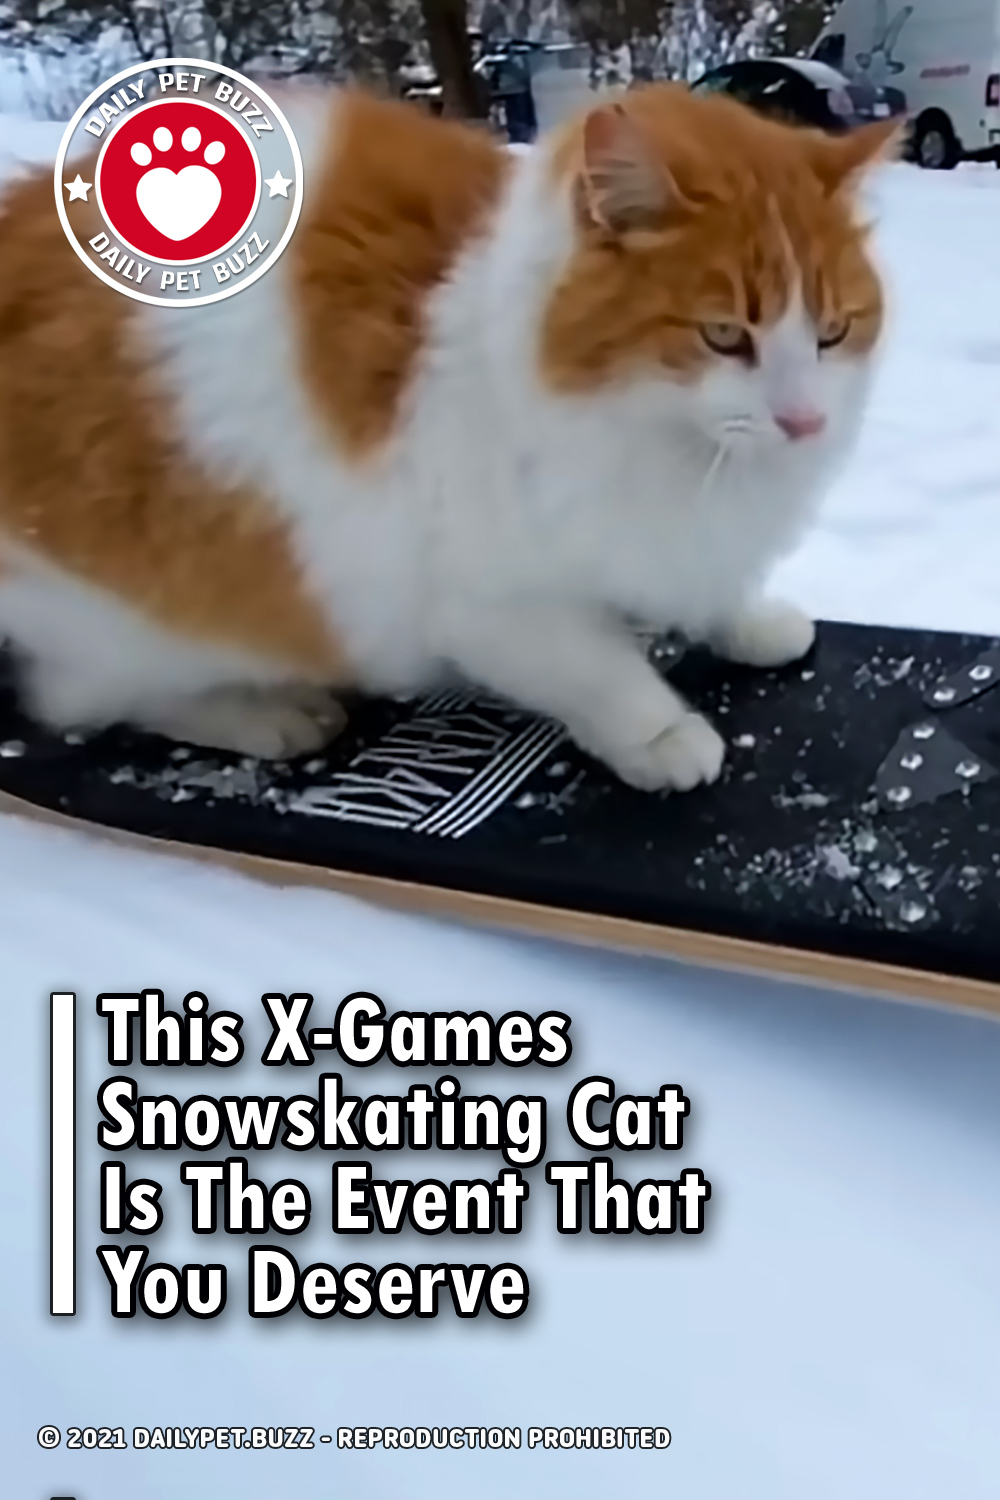 This X-Games Snowskating Cat Is The Event That You Deserve